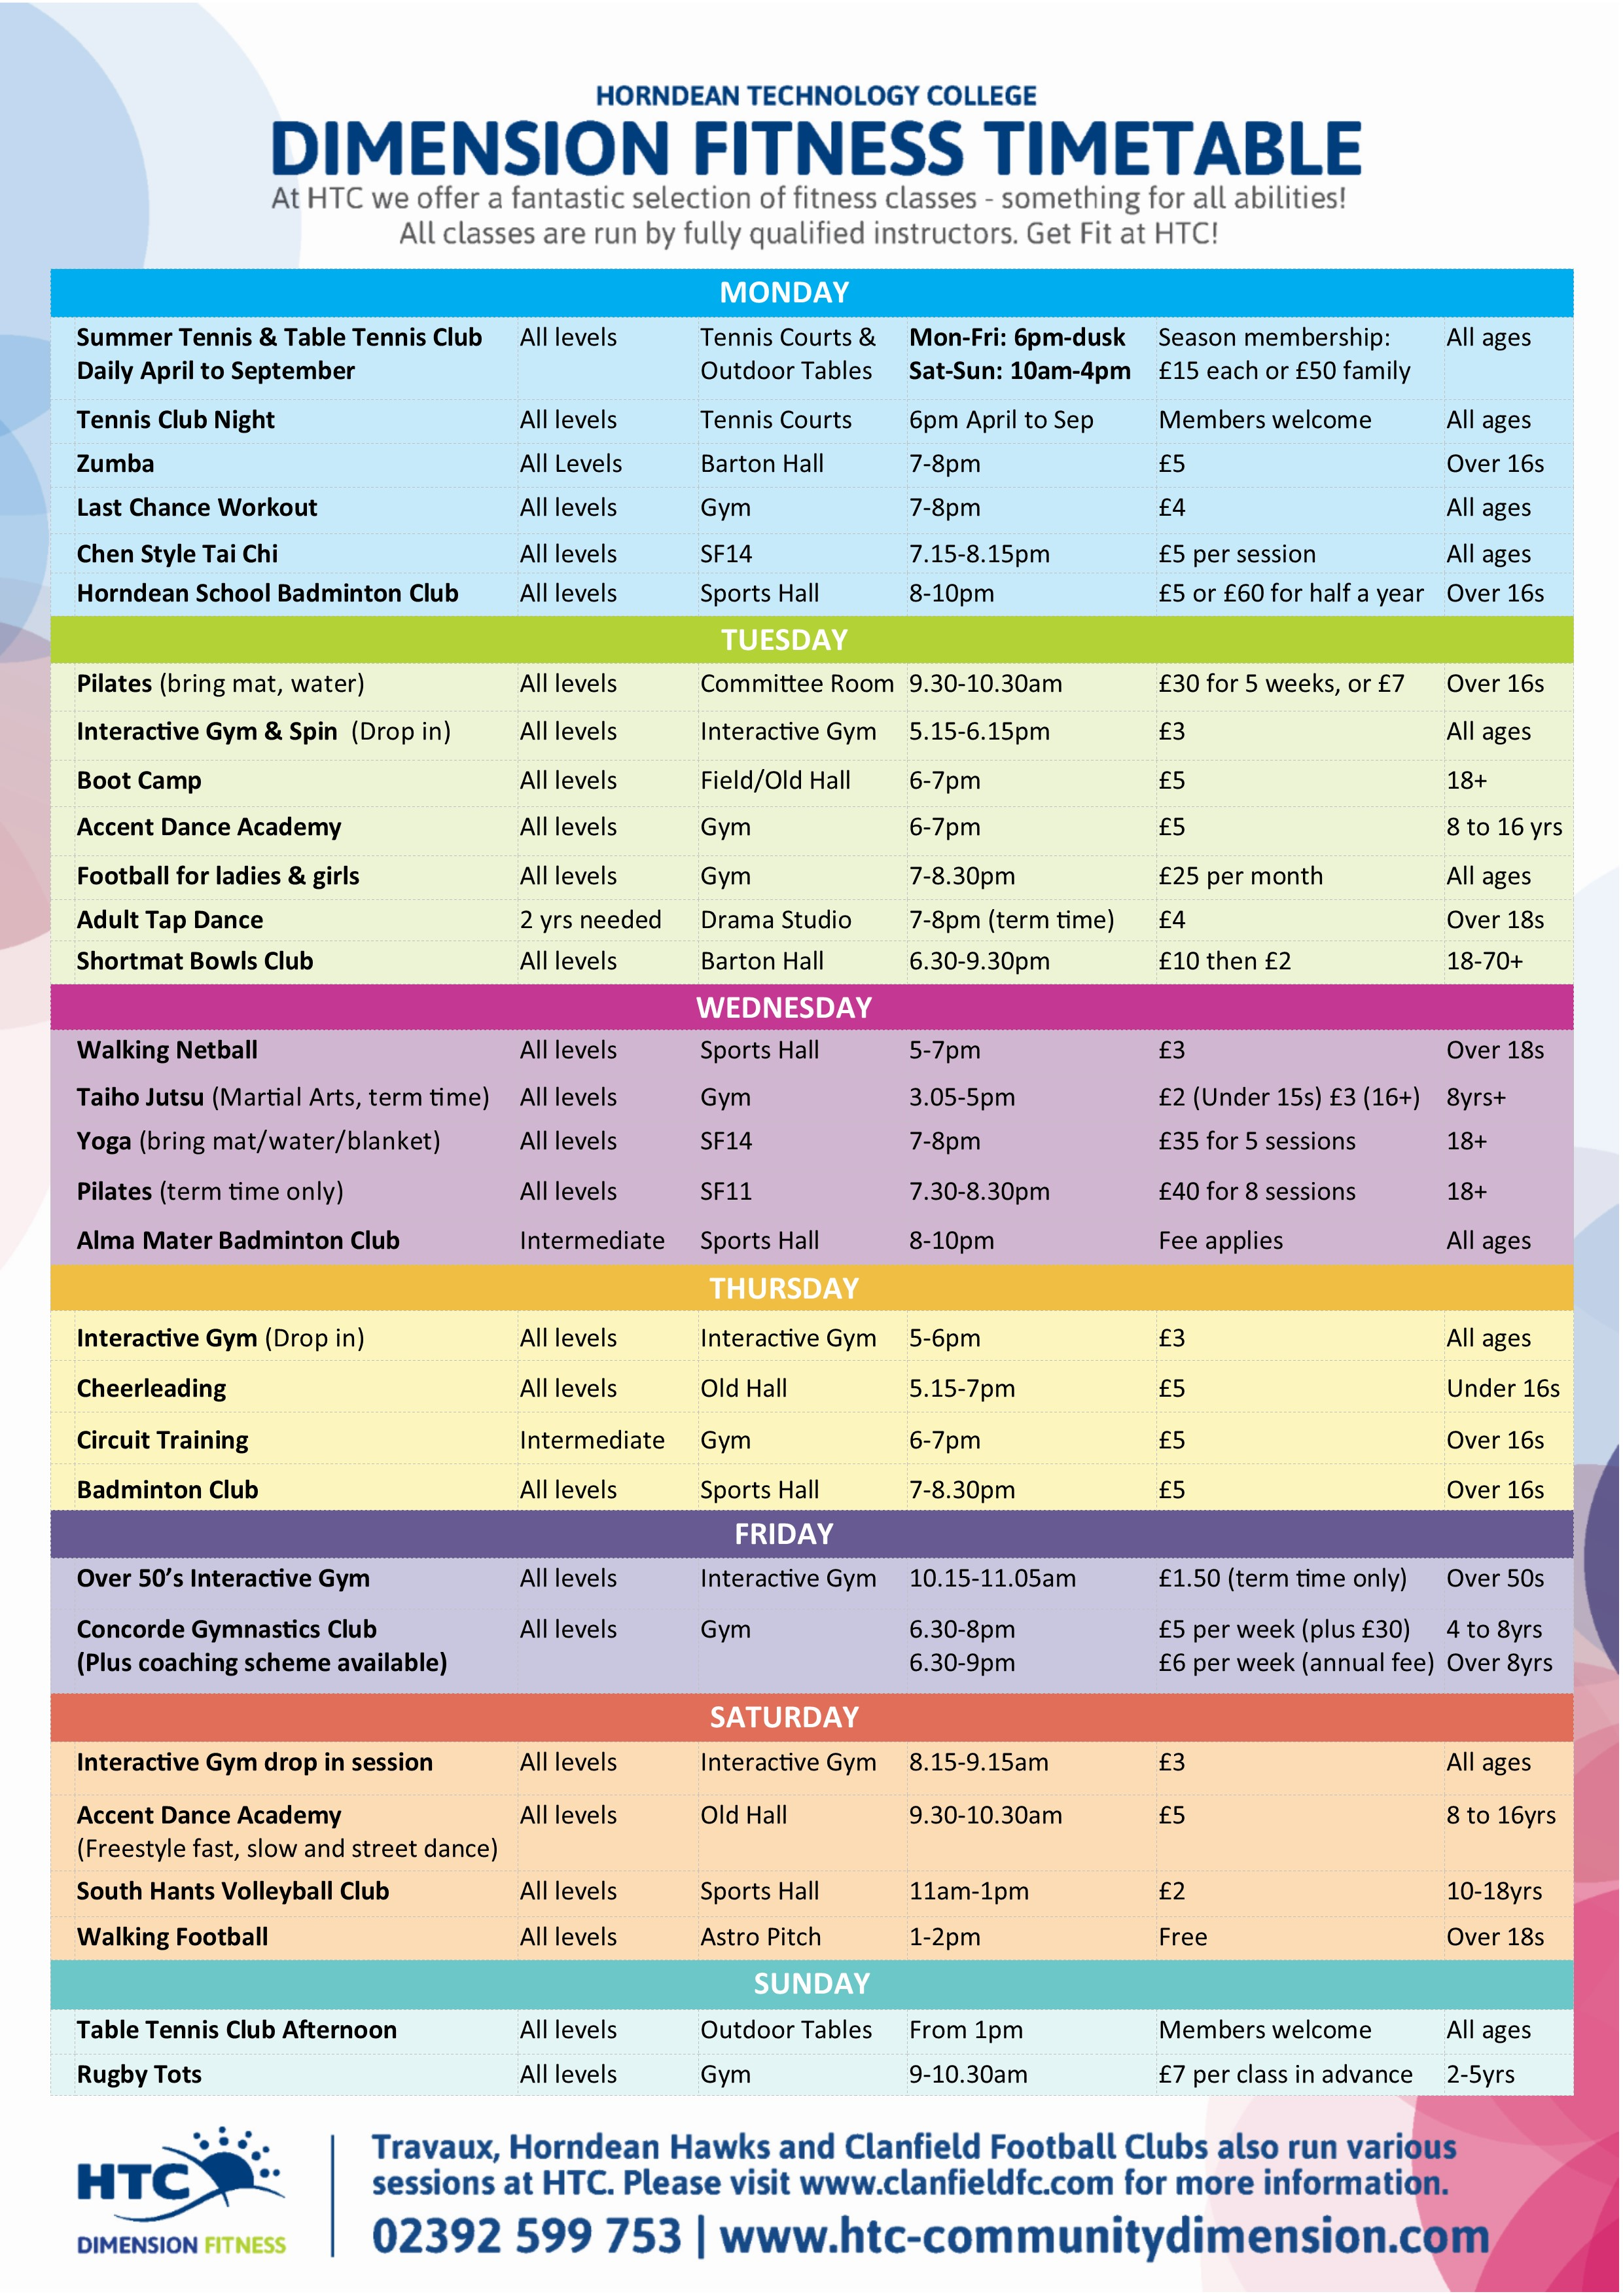 New Dimension Fitness Timetable at HTC